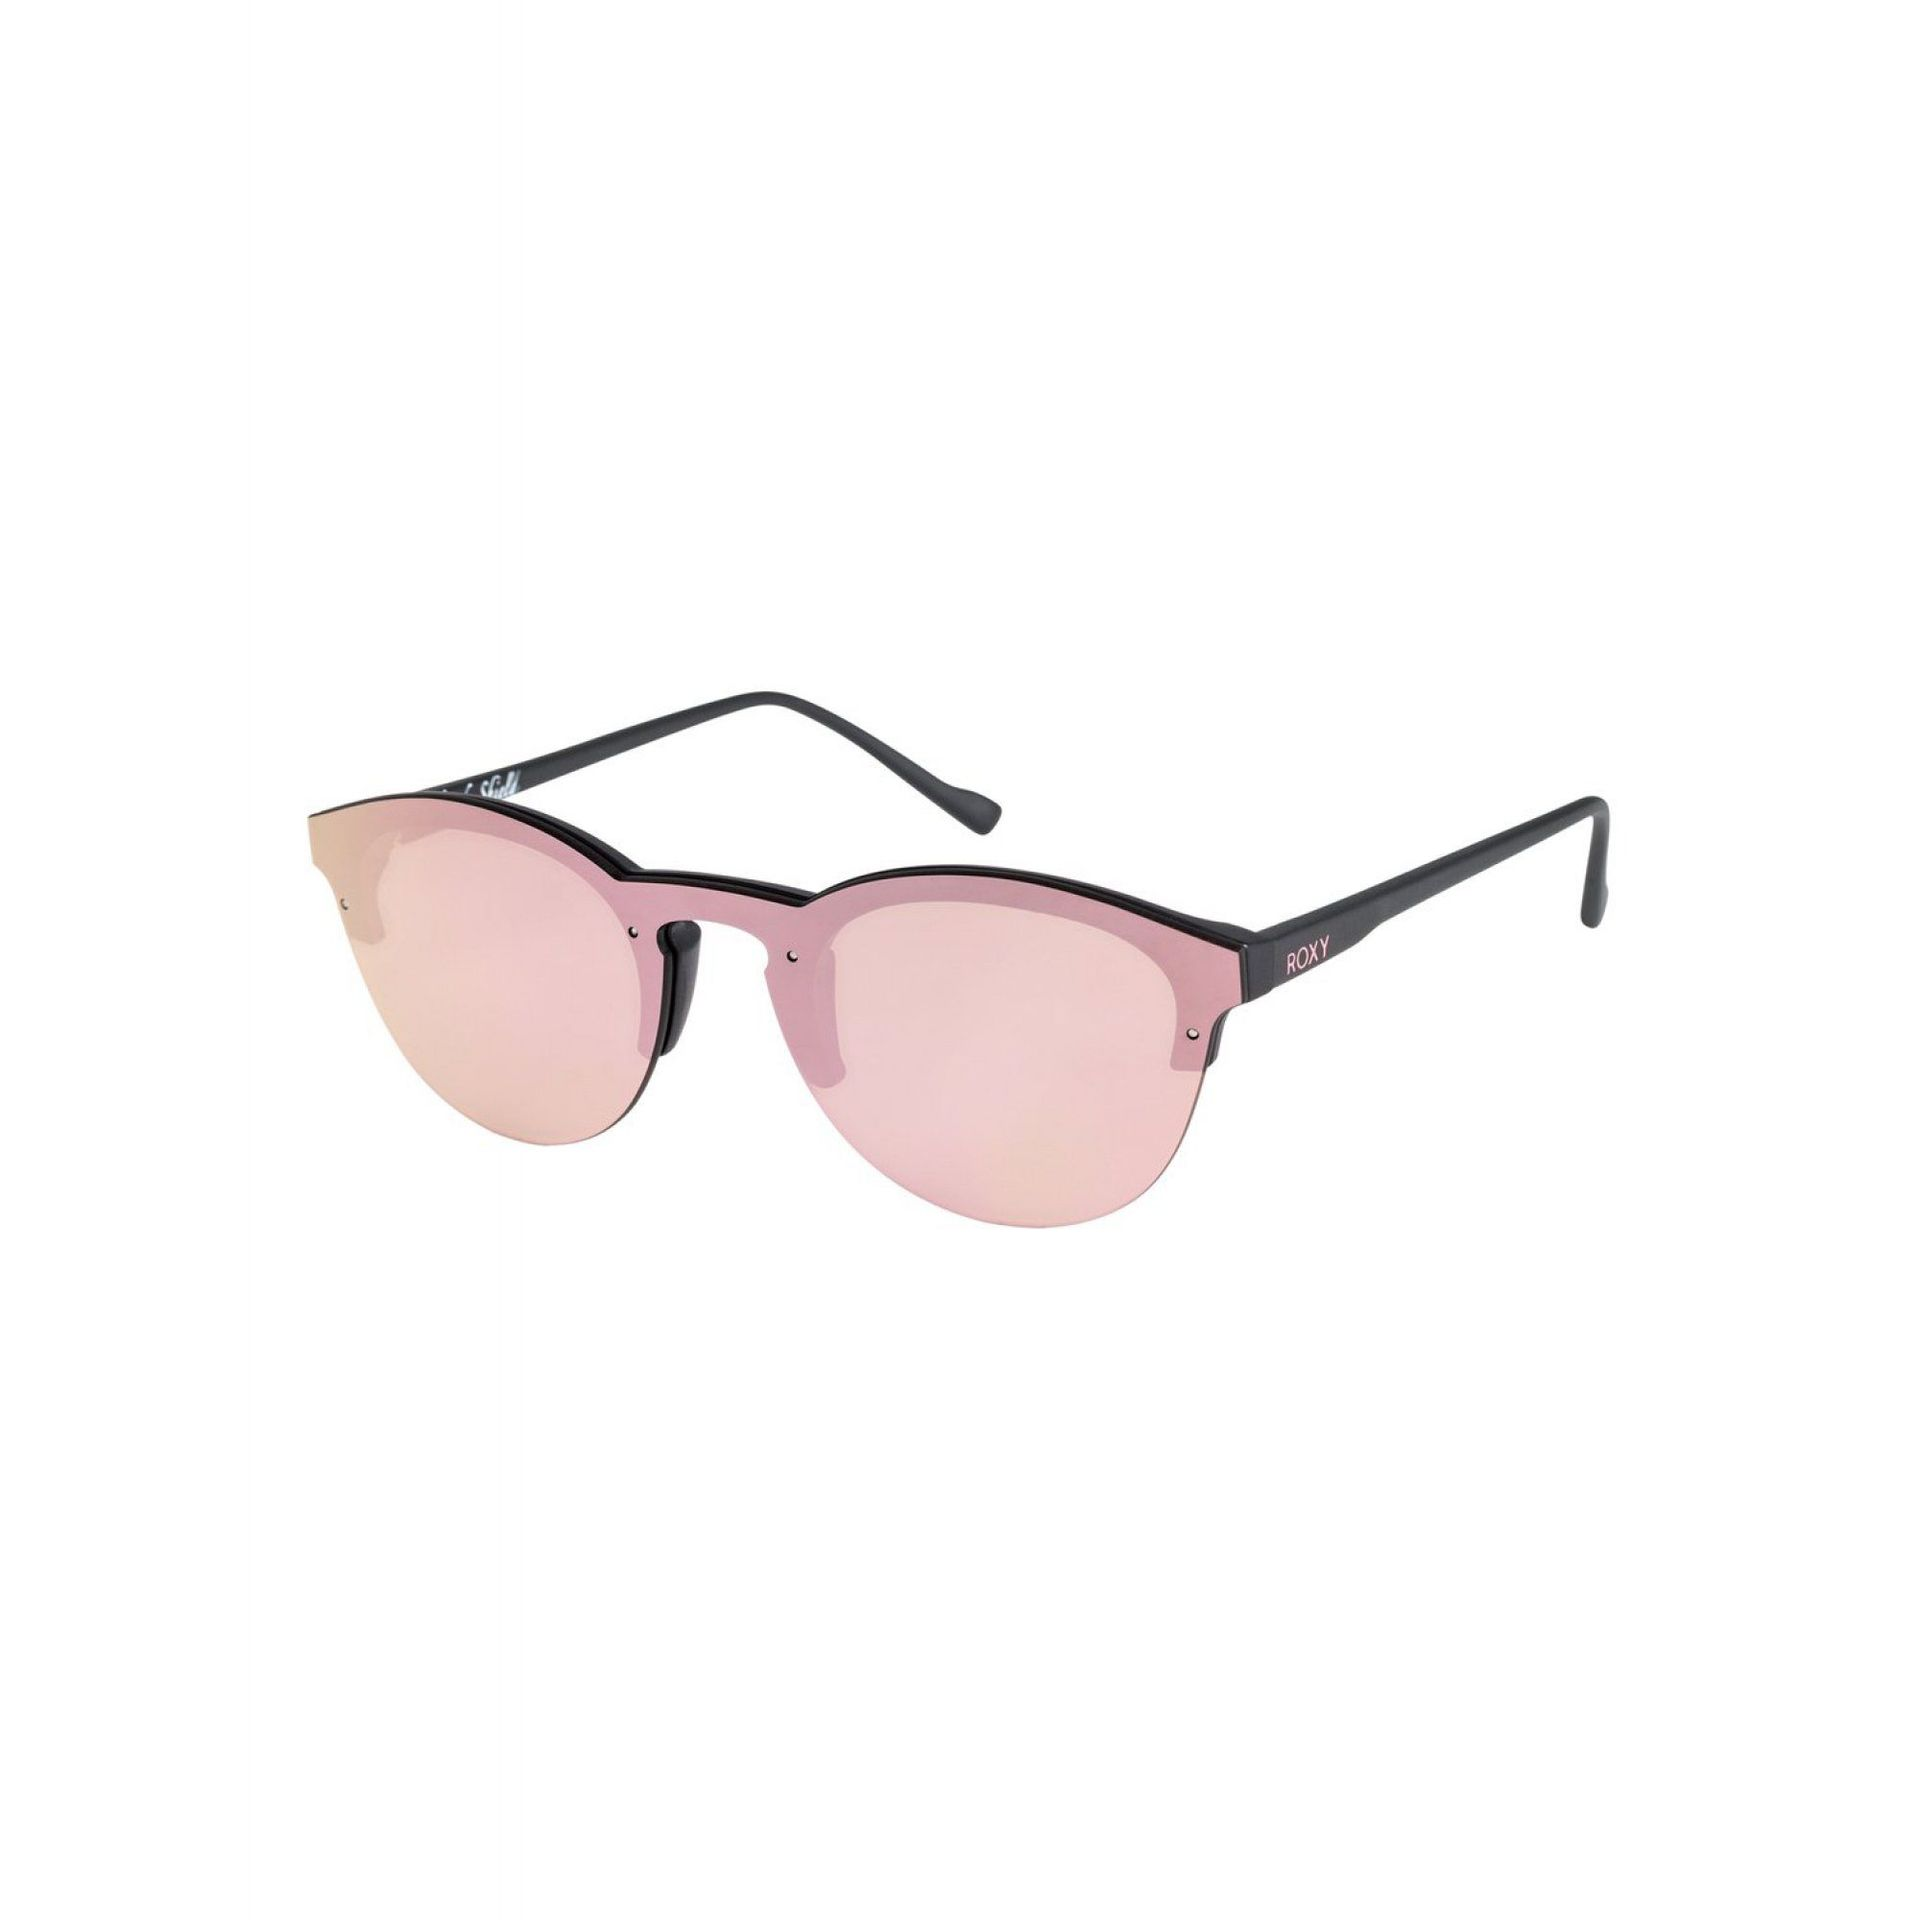 OKULARY ROXY LADY SHIELD XKKN 1